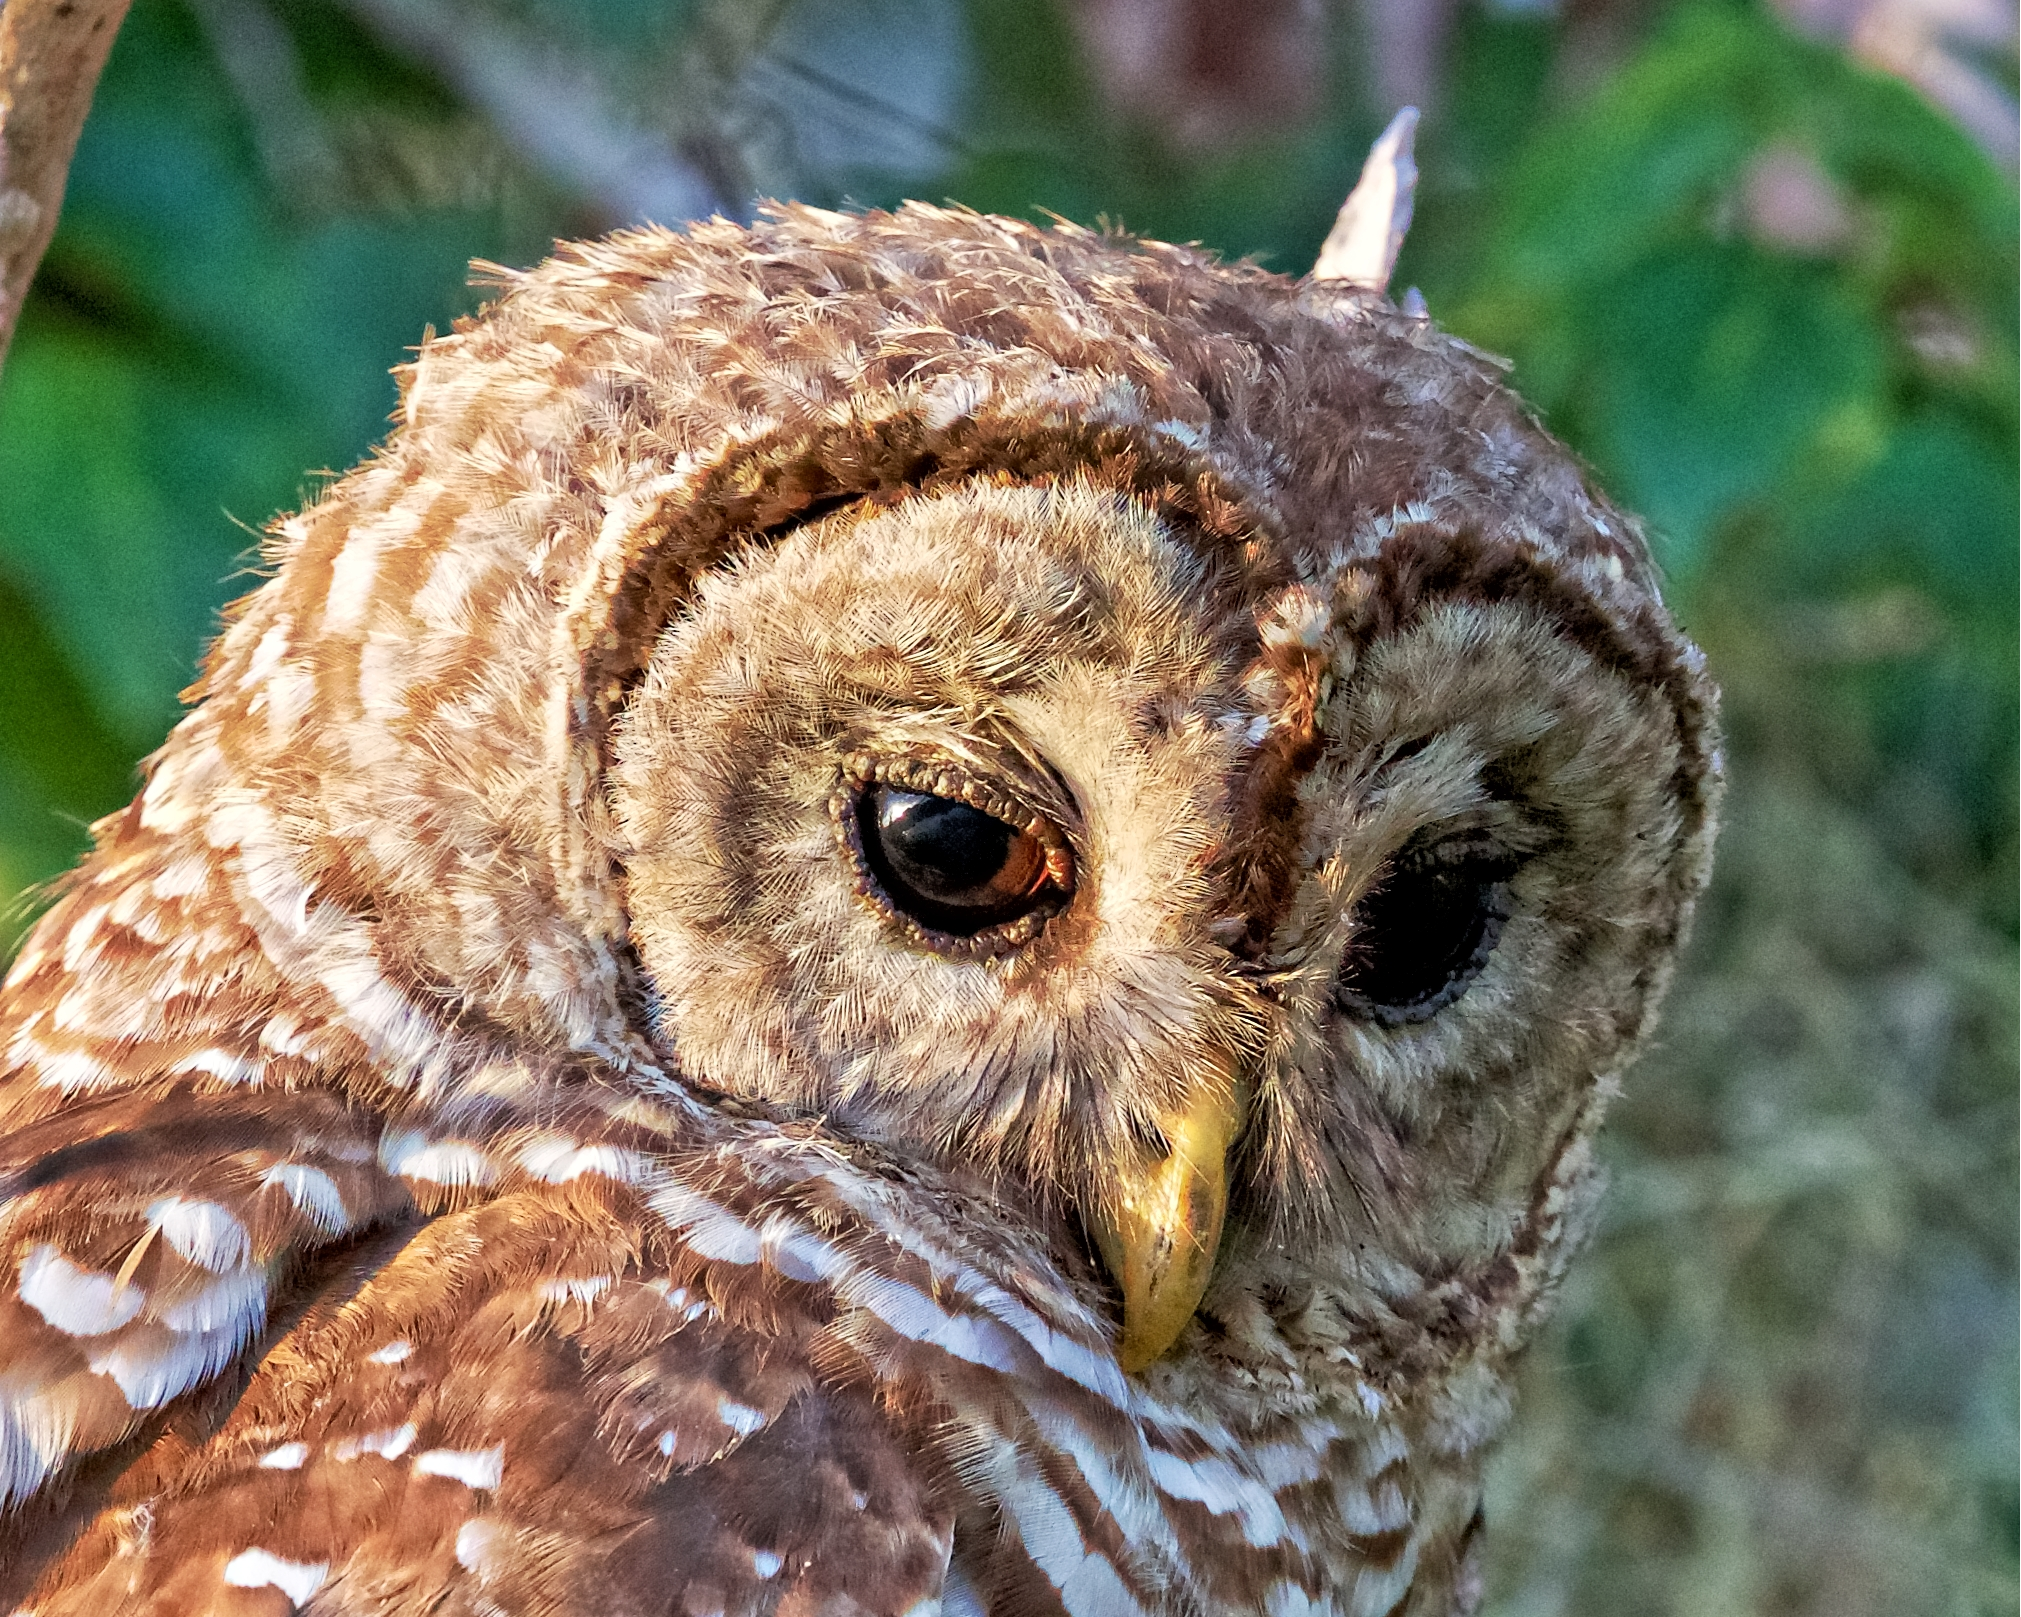 Close up encounter of the Hoot Owl kind...note the feather detail around the eyes..closest I have ever been to a wild Barred Owl. This photo made the bird wall. It hangs out with the Editor now.